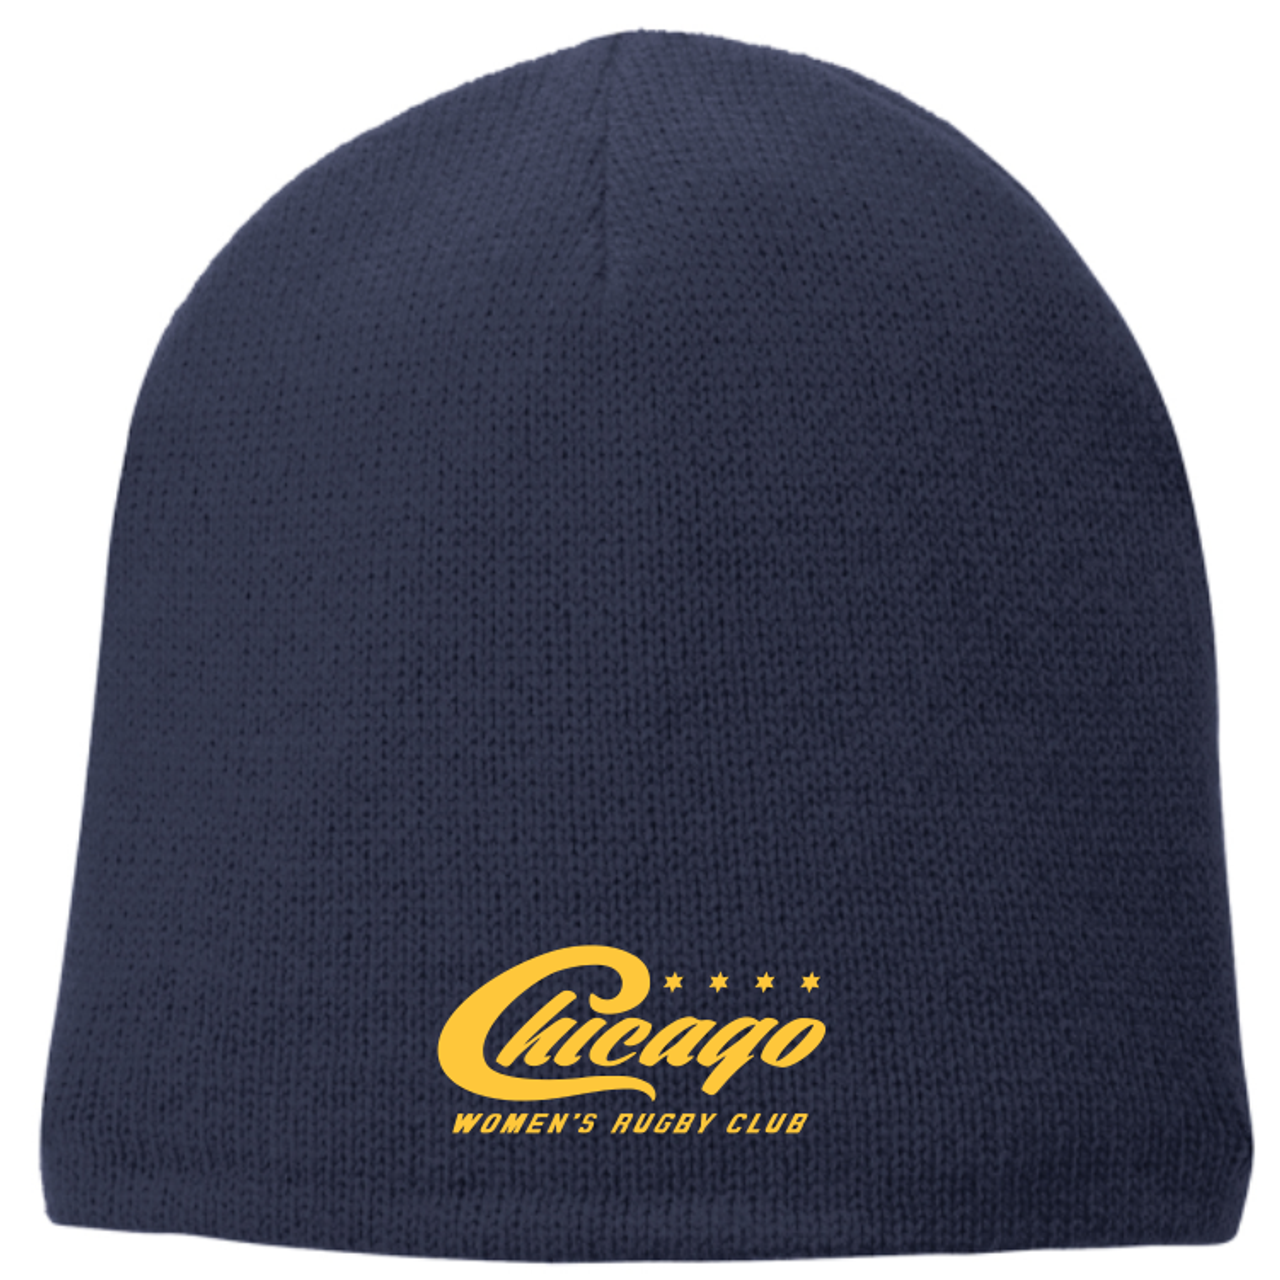 Chicago WRFC Fleece-Lined Beanie